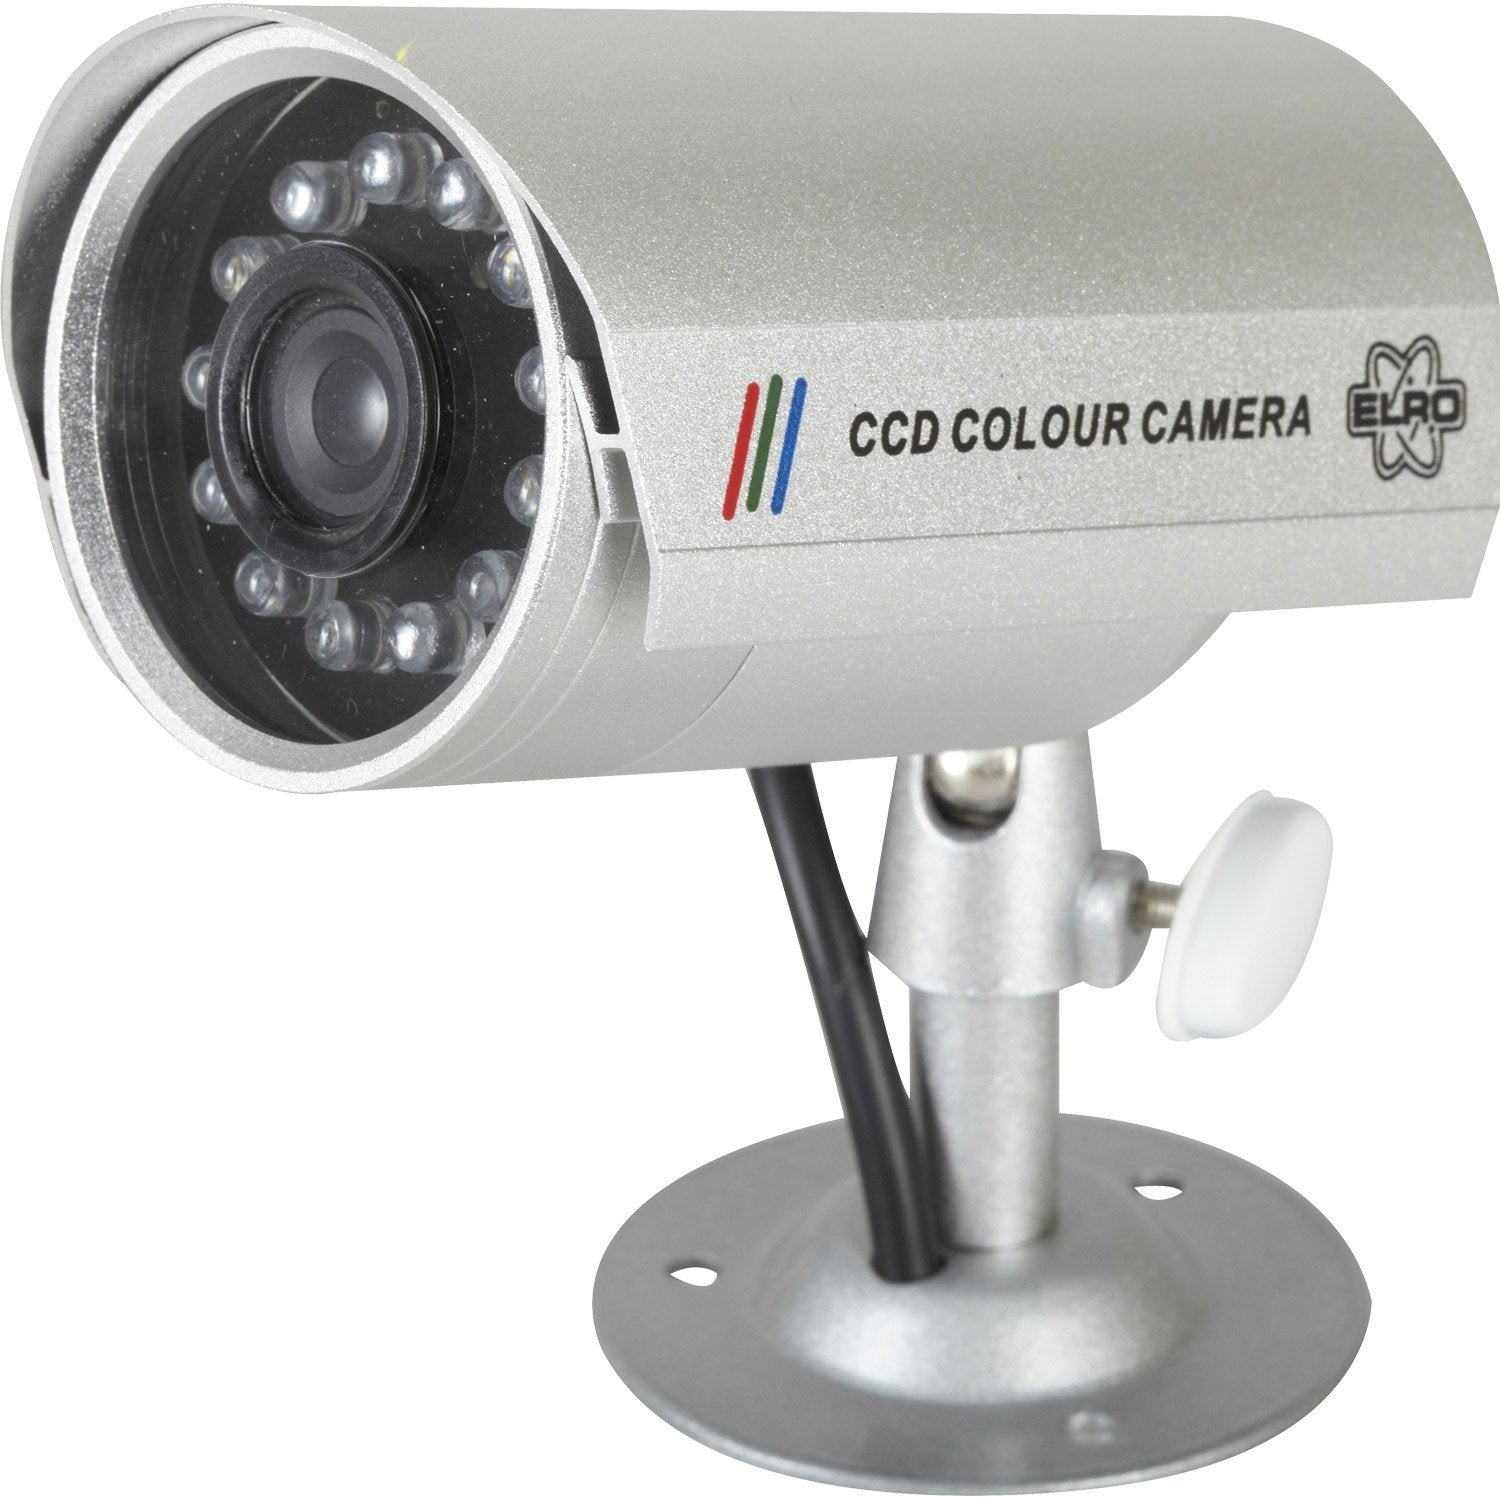 Cam ra de surveillance factice elro cs22d leroy merlin - Camera factice leroy merlin ...